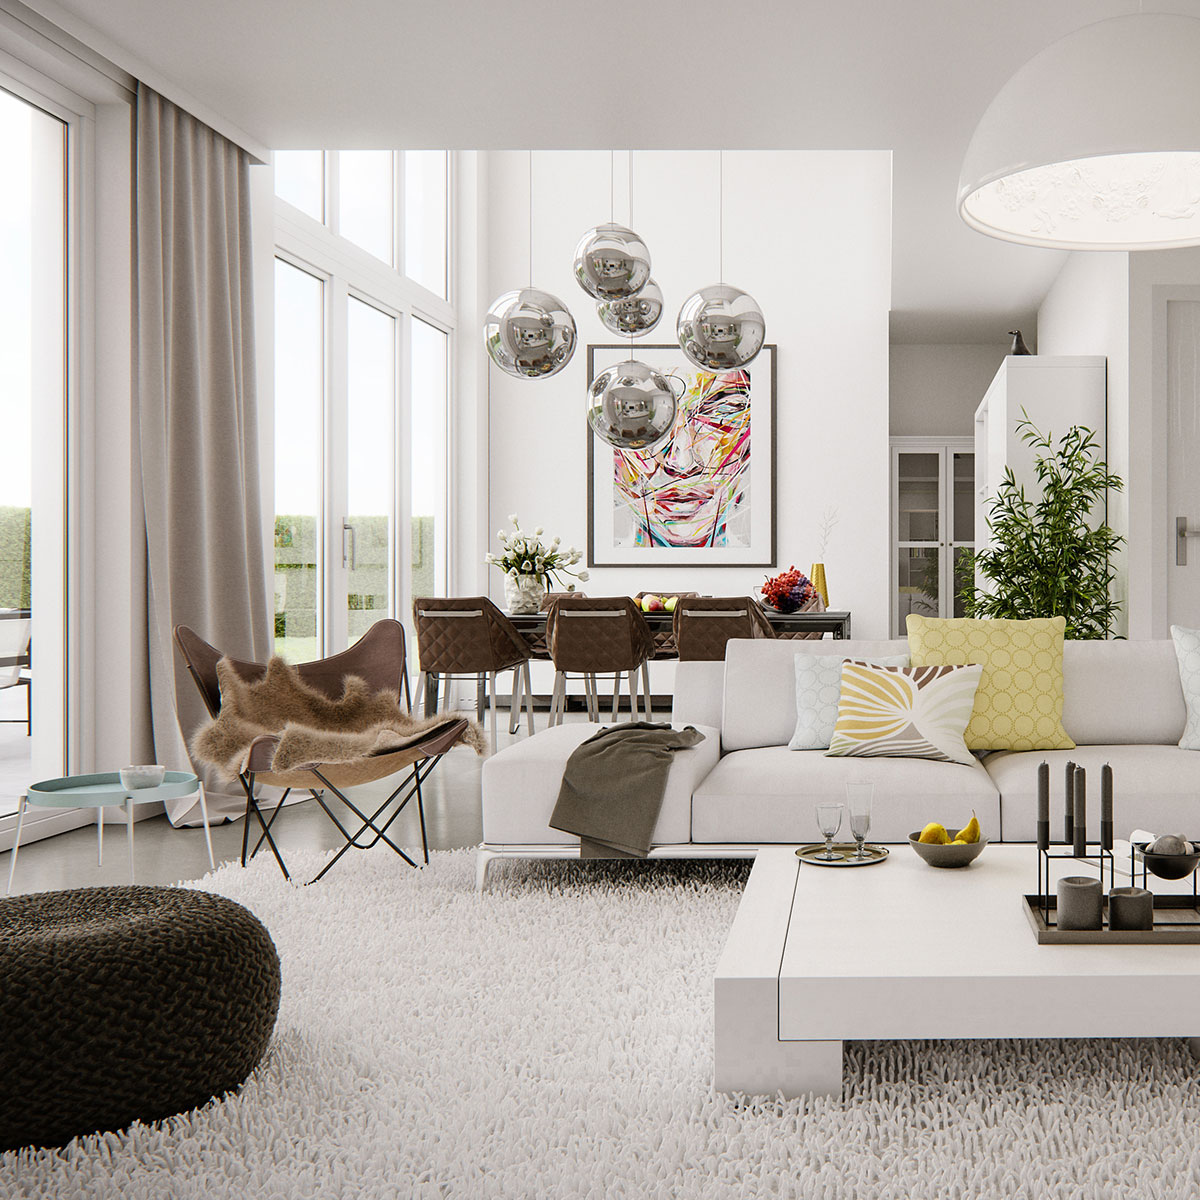 Modern bright interior adorable home for Deco salle salon moderne